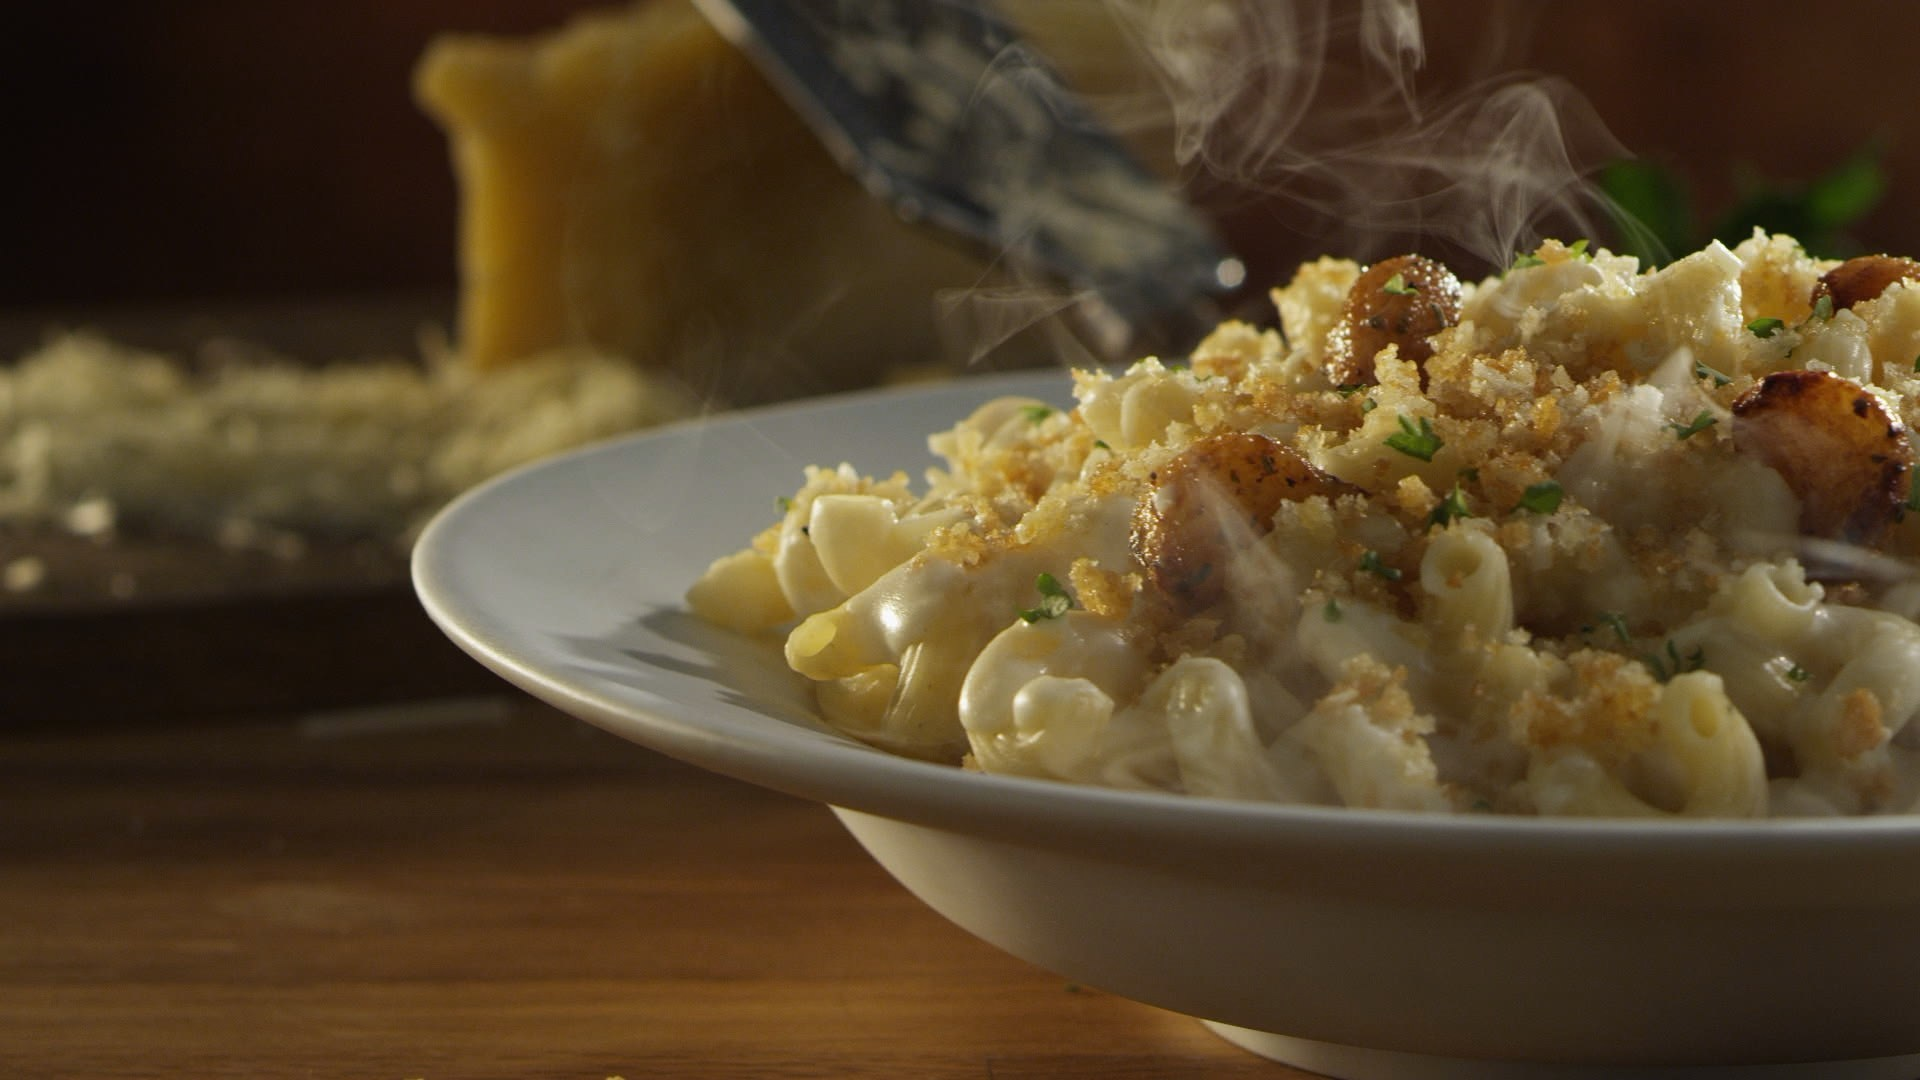 Olive Garden Offers Free Entr 39 E With Buy One Take One